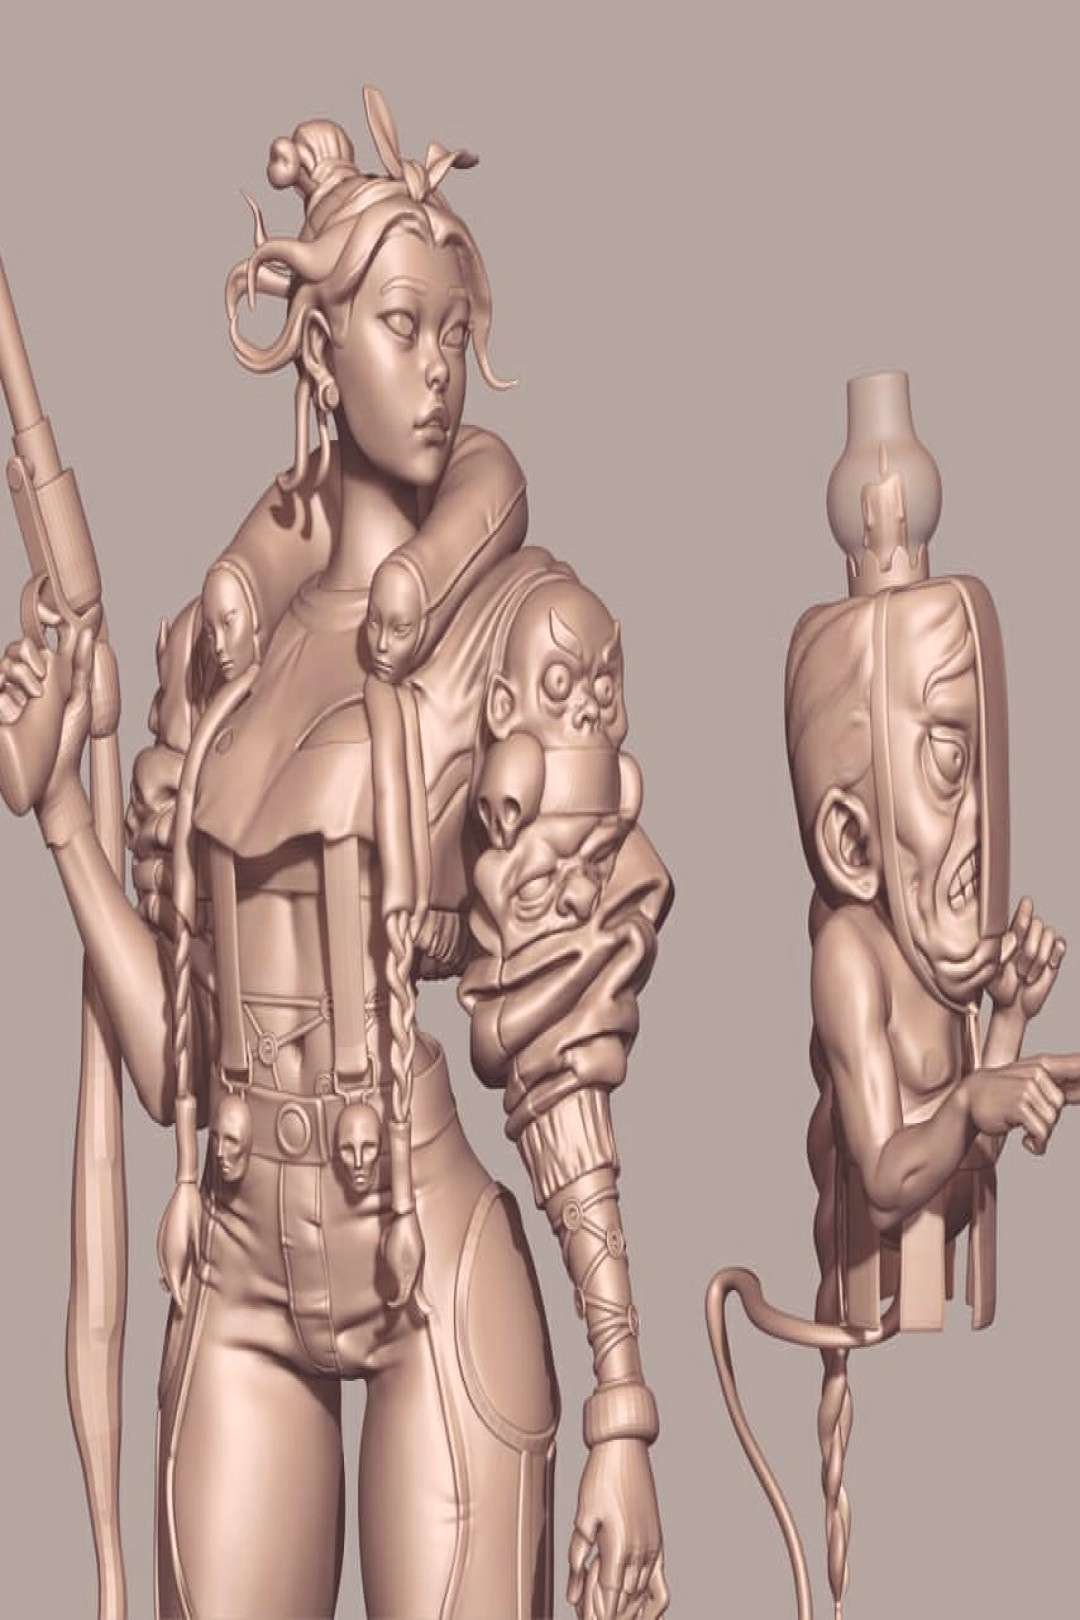 More work on the piece #zbrush